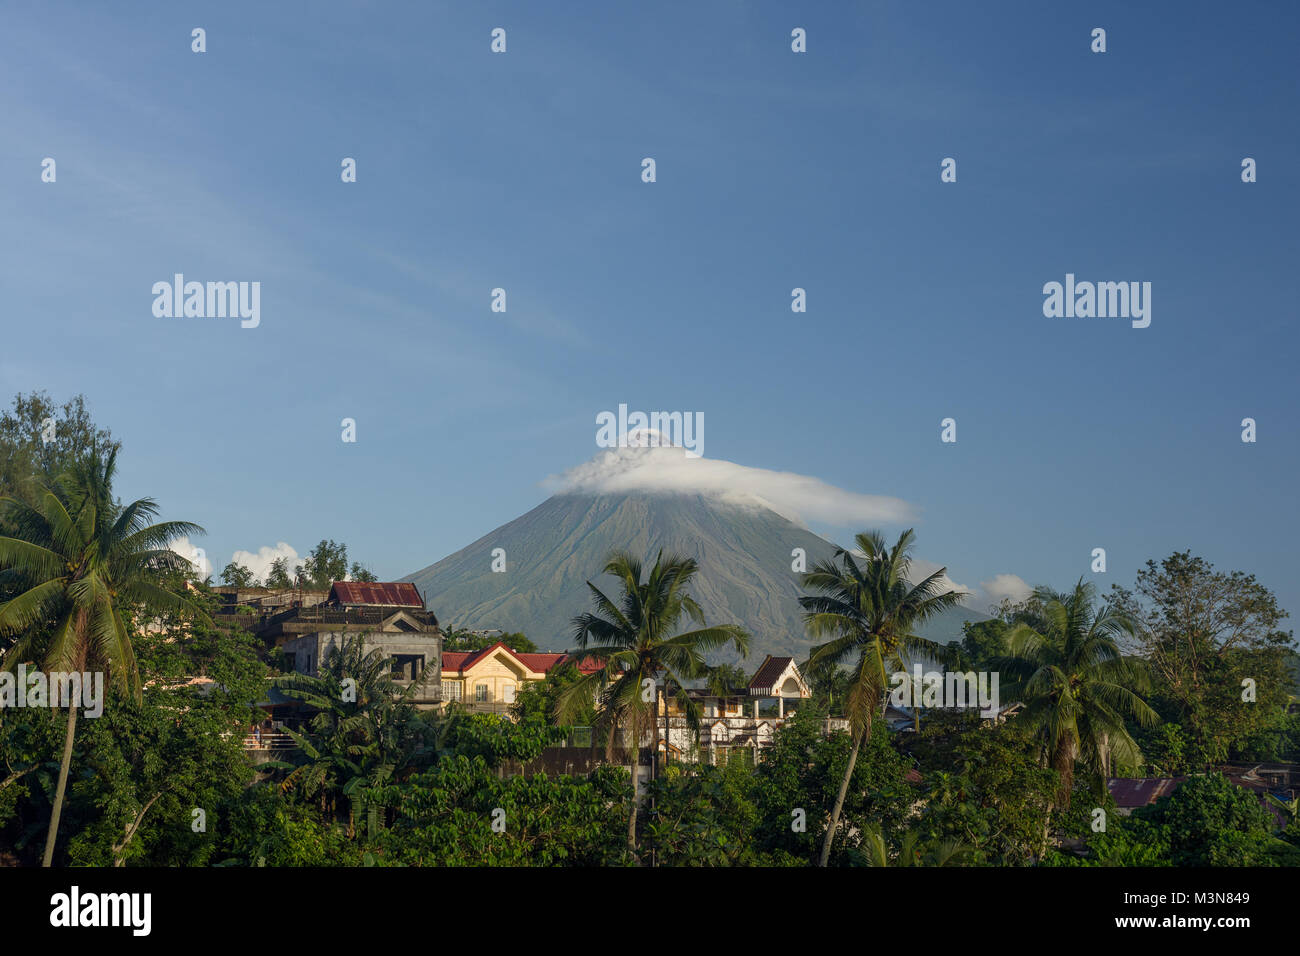 A cloud blanket over the tip of Mount Mayon volcano near Legazpi City, Albay, Philippines. - Stock Image